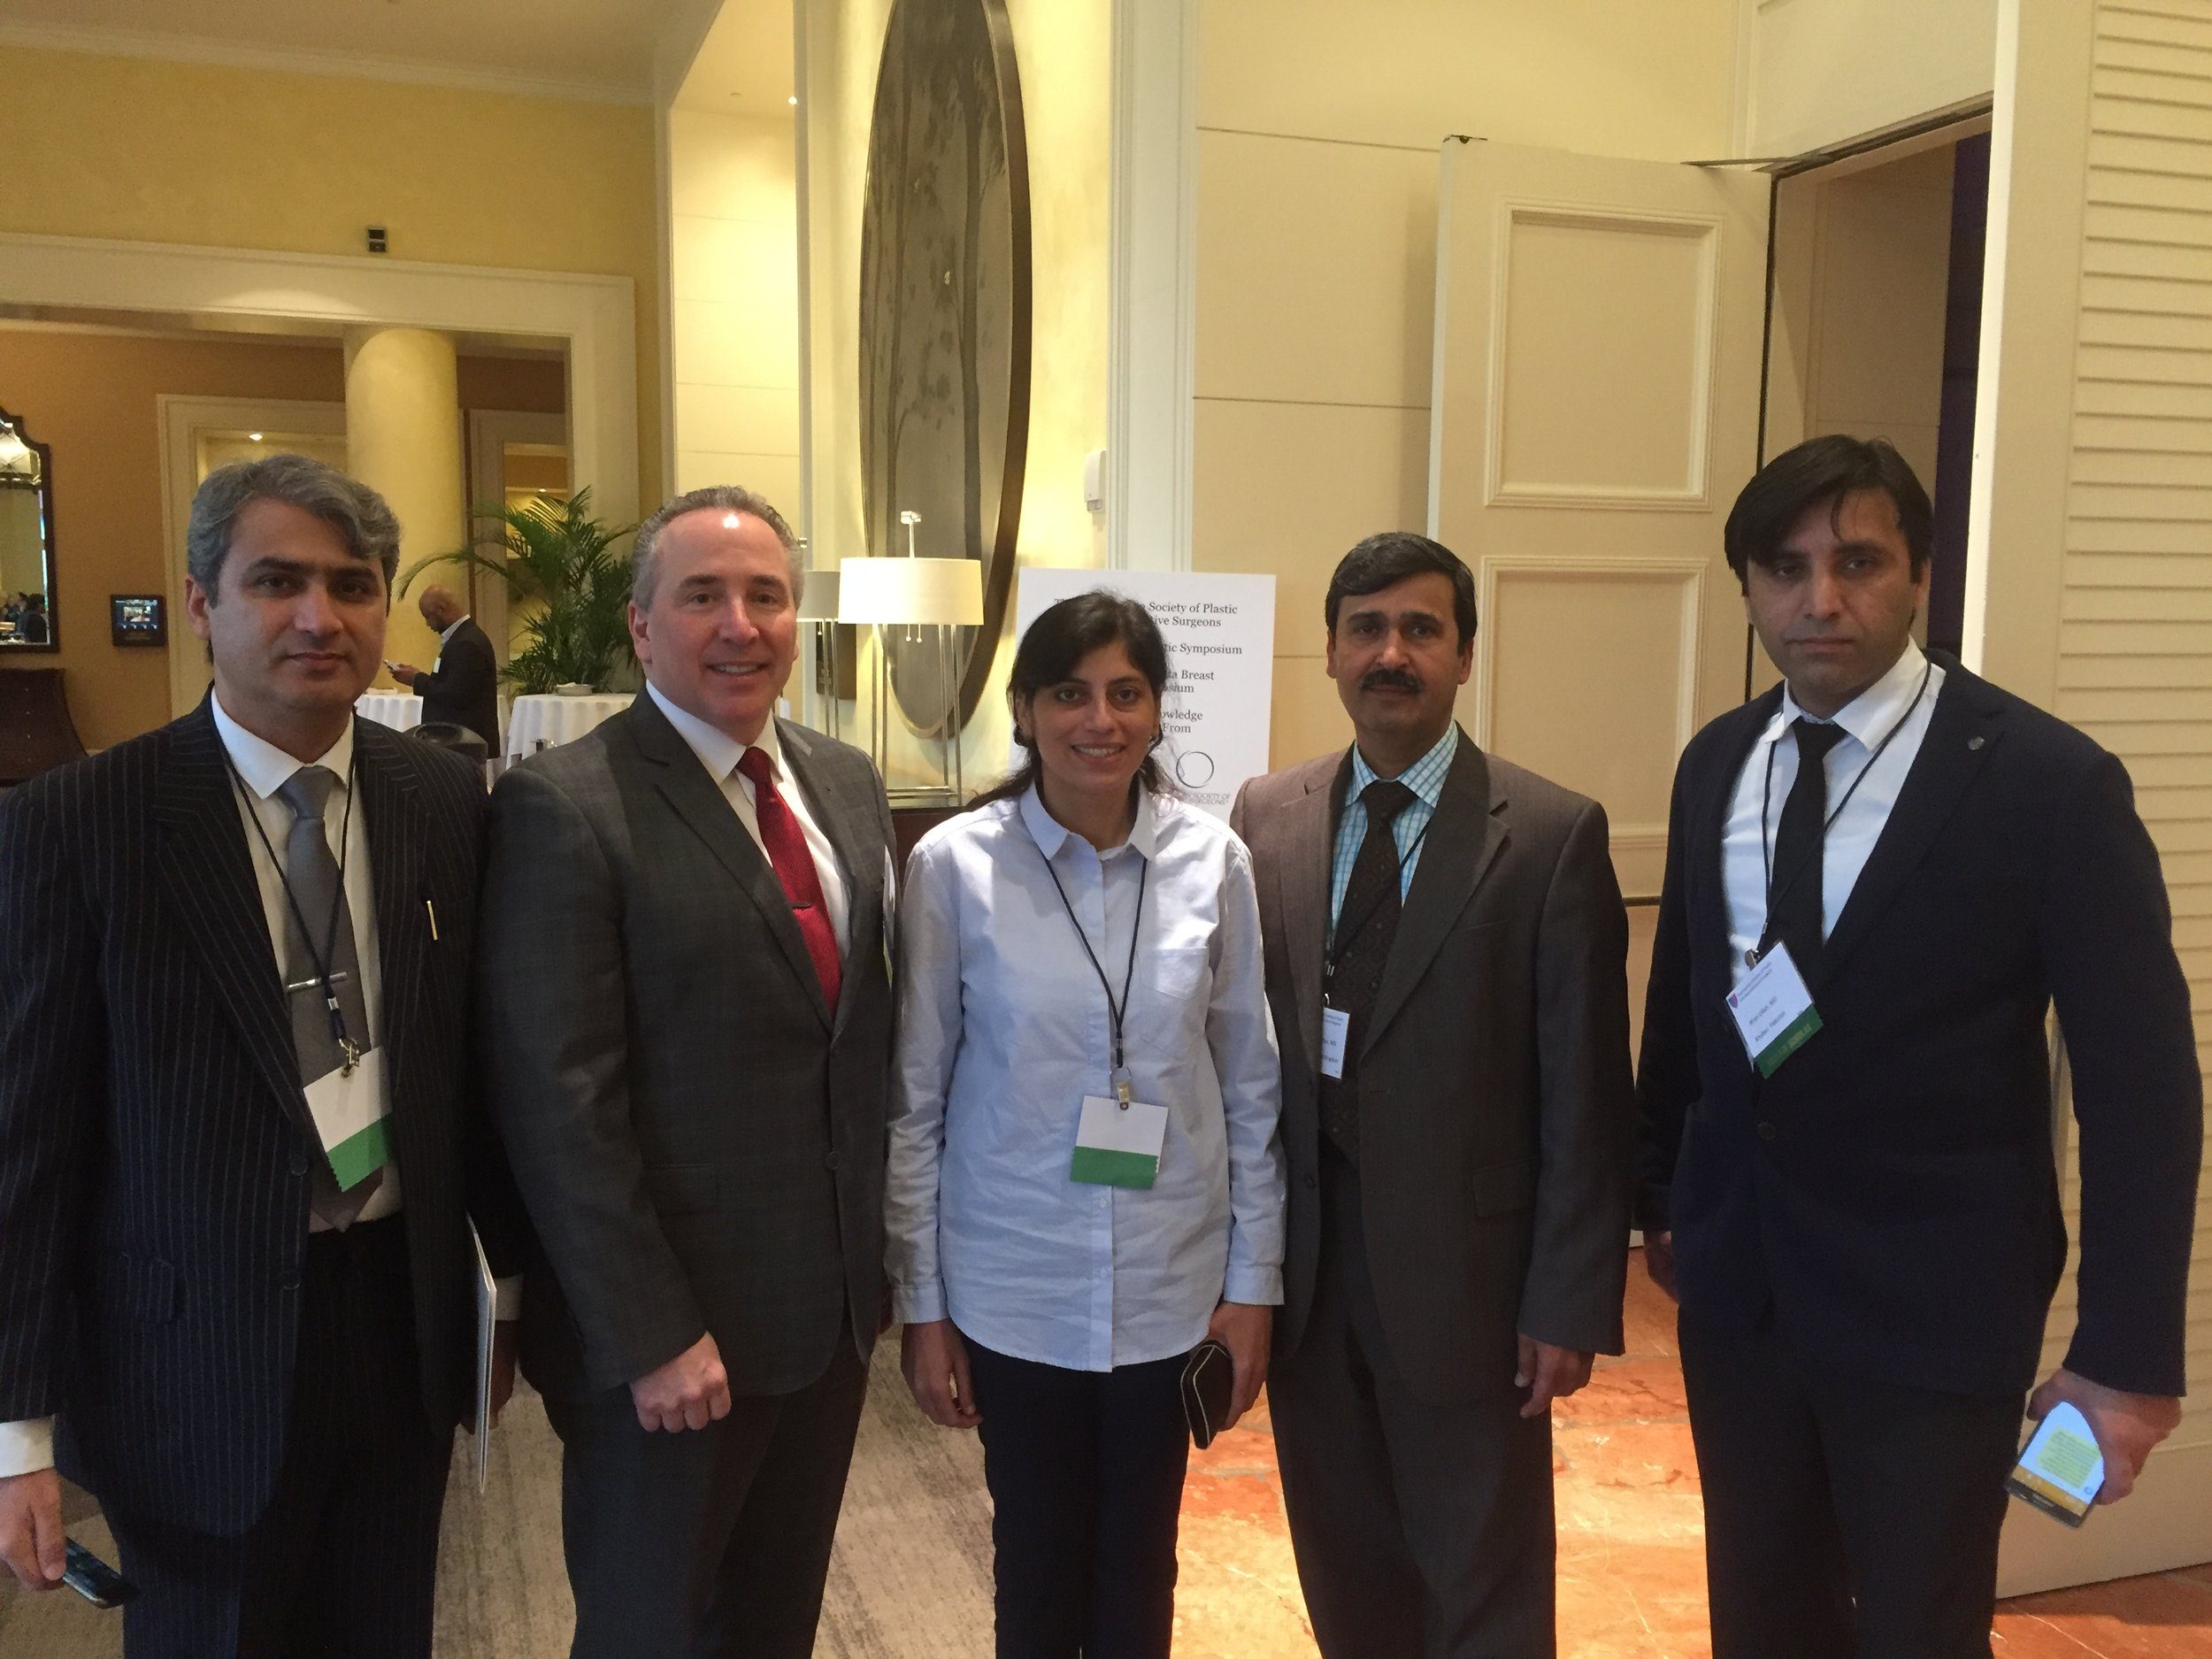 With Dr Mark A Codner, Program Chairman and Foreign Scholars from Pakistan.